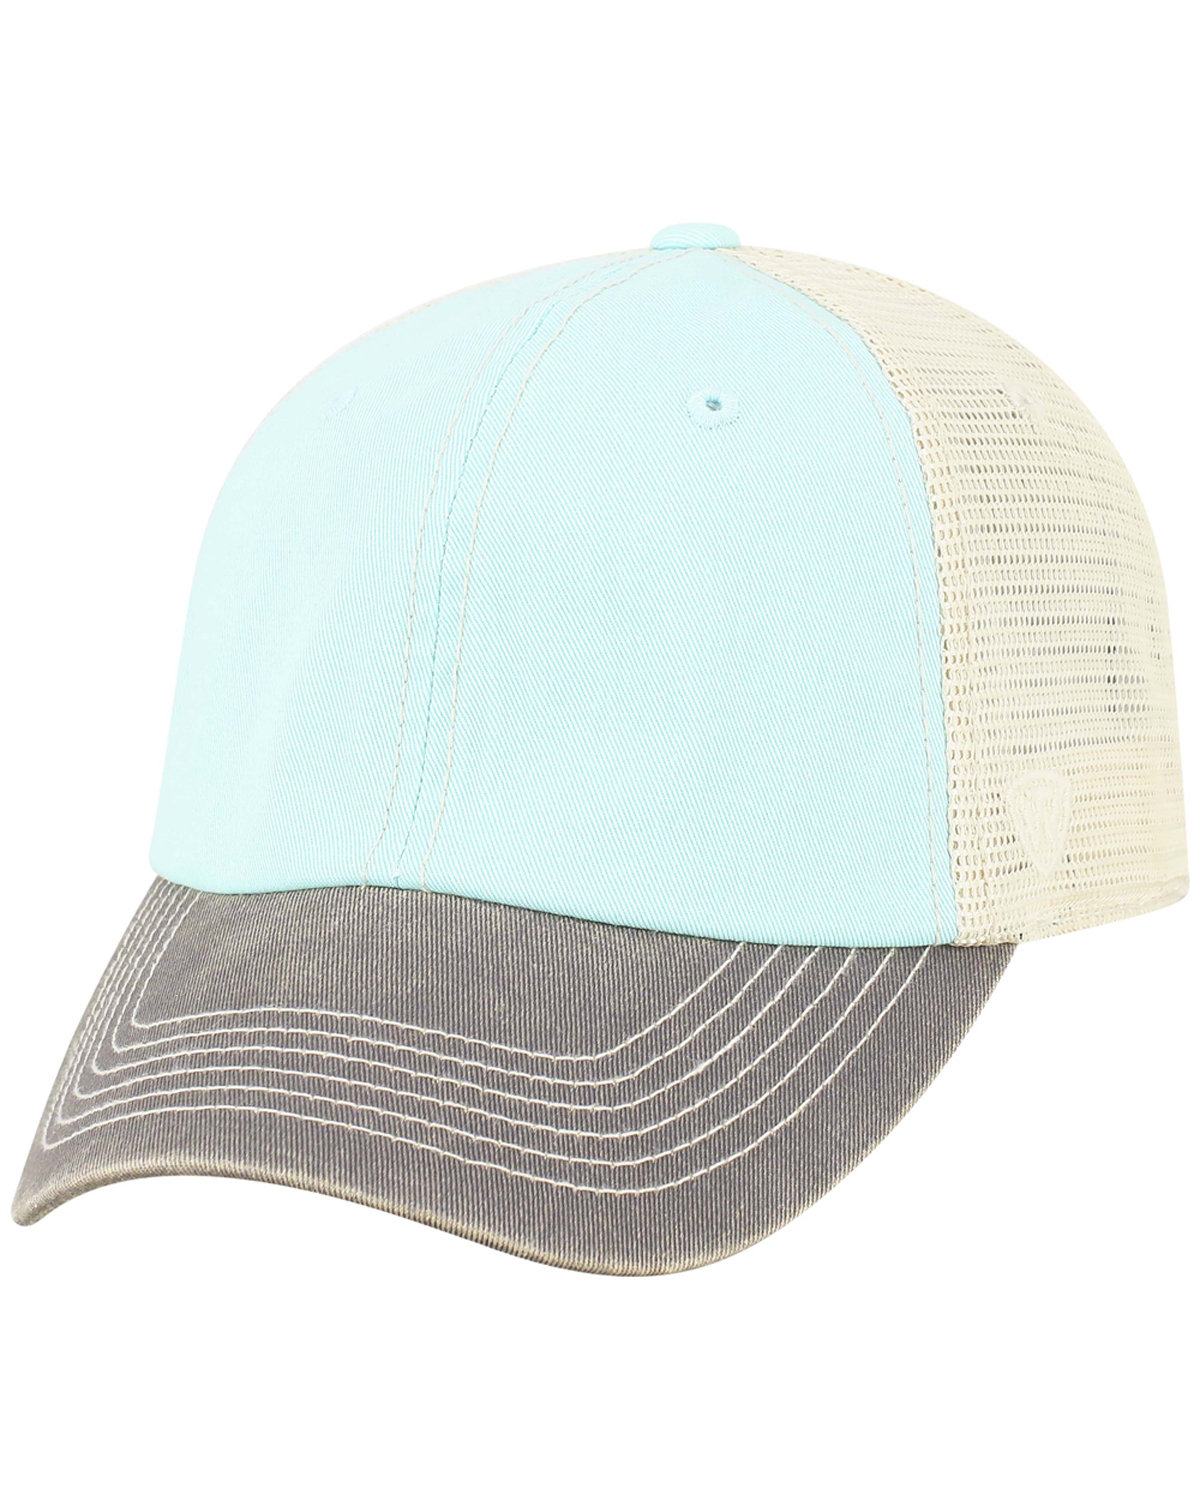 Top Of The World Adult Offroad Cap TIFF BLUE